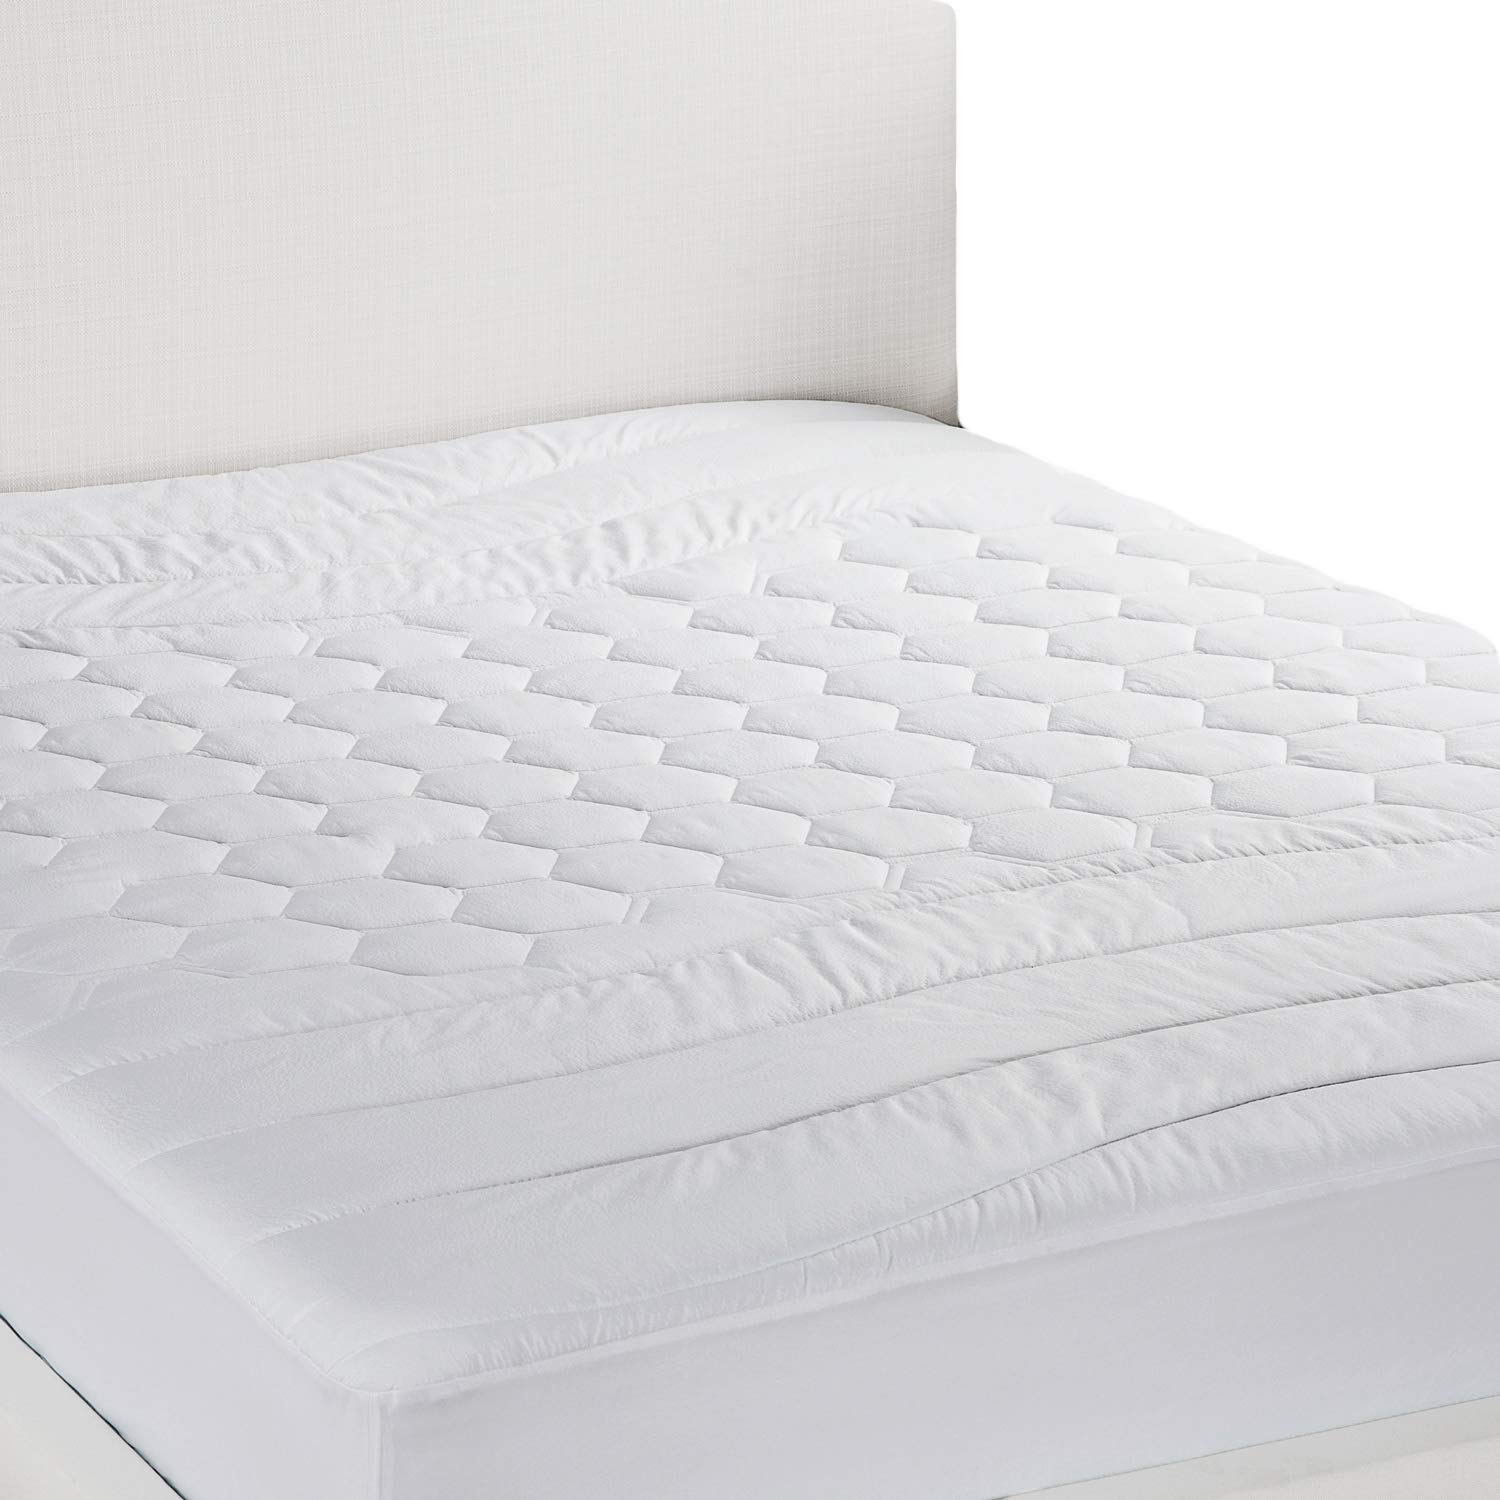 Bedsure Mattress Pad Twin XL/Twin Extra Long Size Hypoallergenic - Antibacterial, Breathable - Ultra Soft Quilted Mattress Protector, Fitted Sheet Mattress Cover White